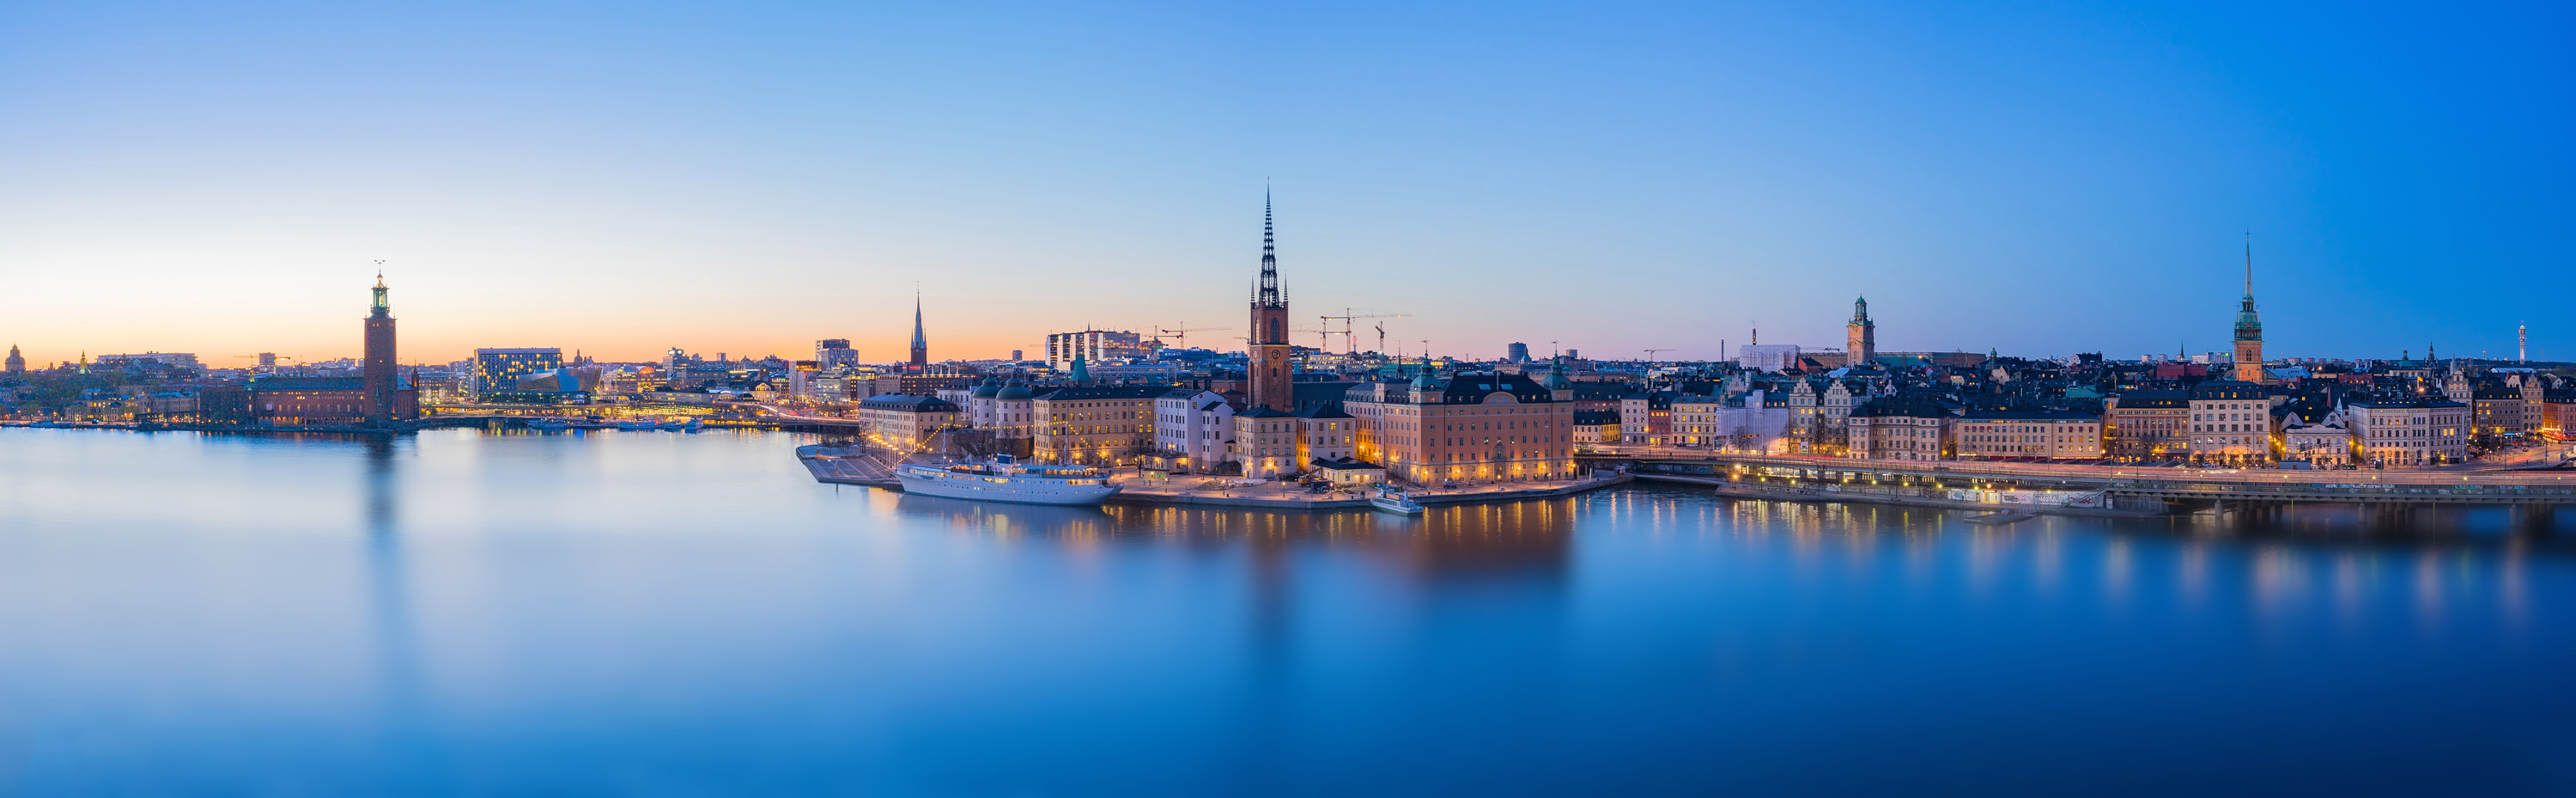 Skyline in Stockholm City, Sweden